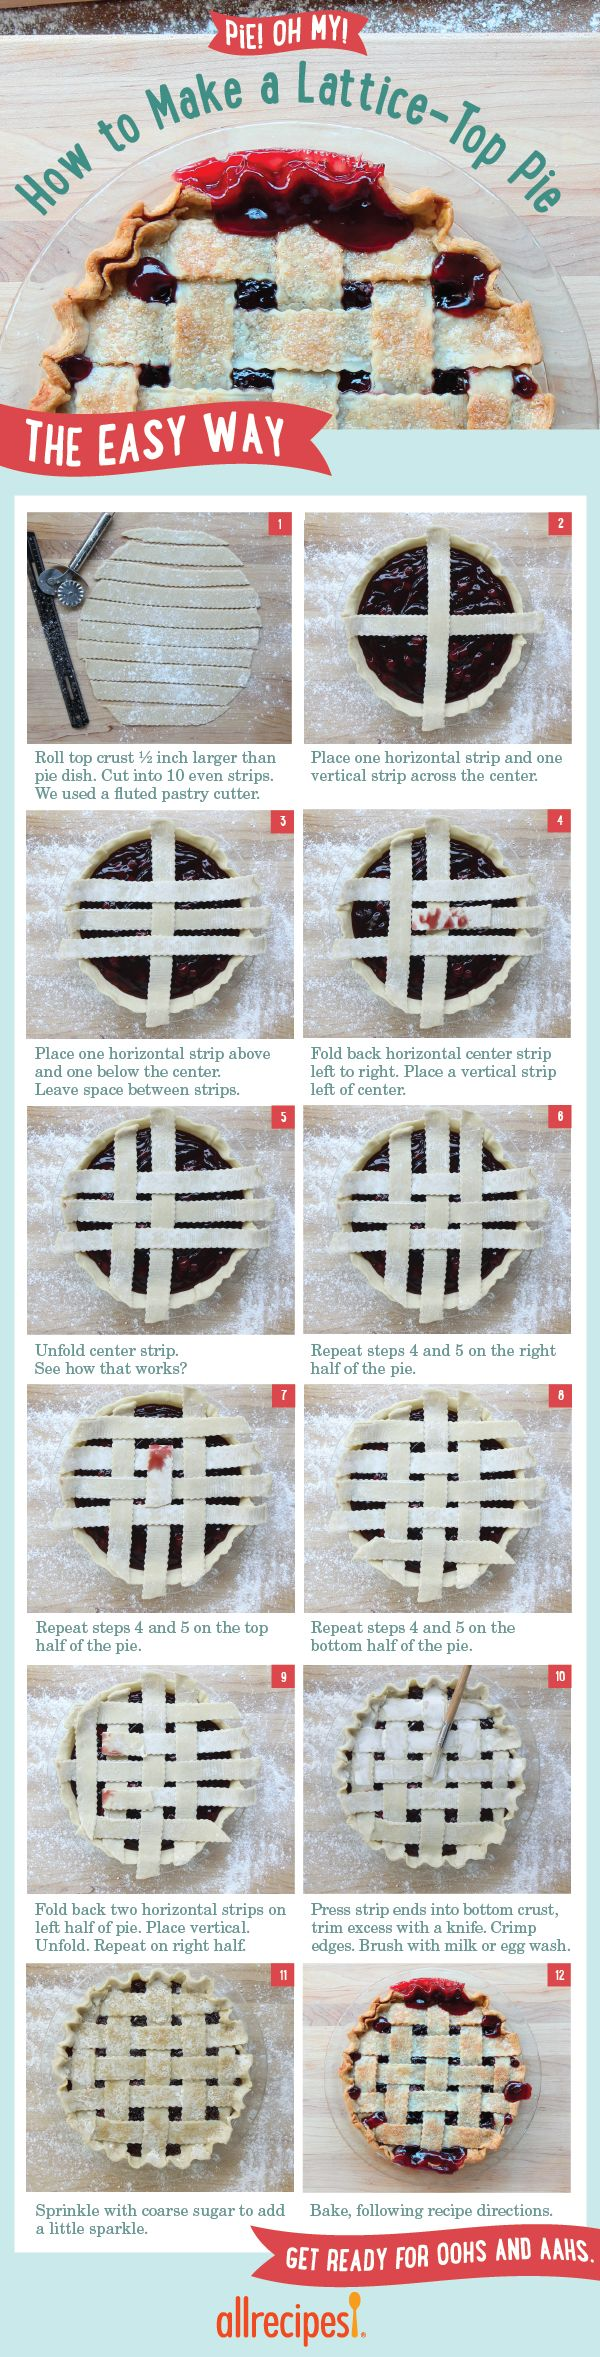 How To Make A Lattice-Top Pie